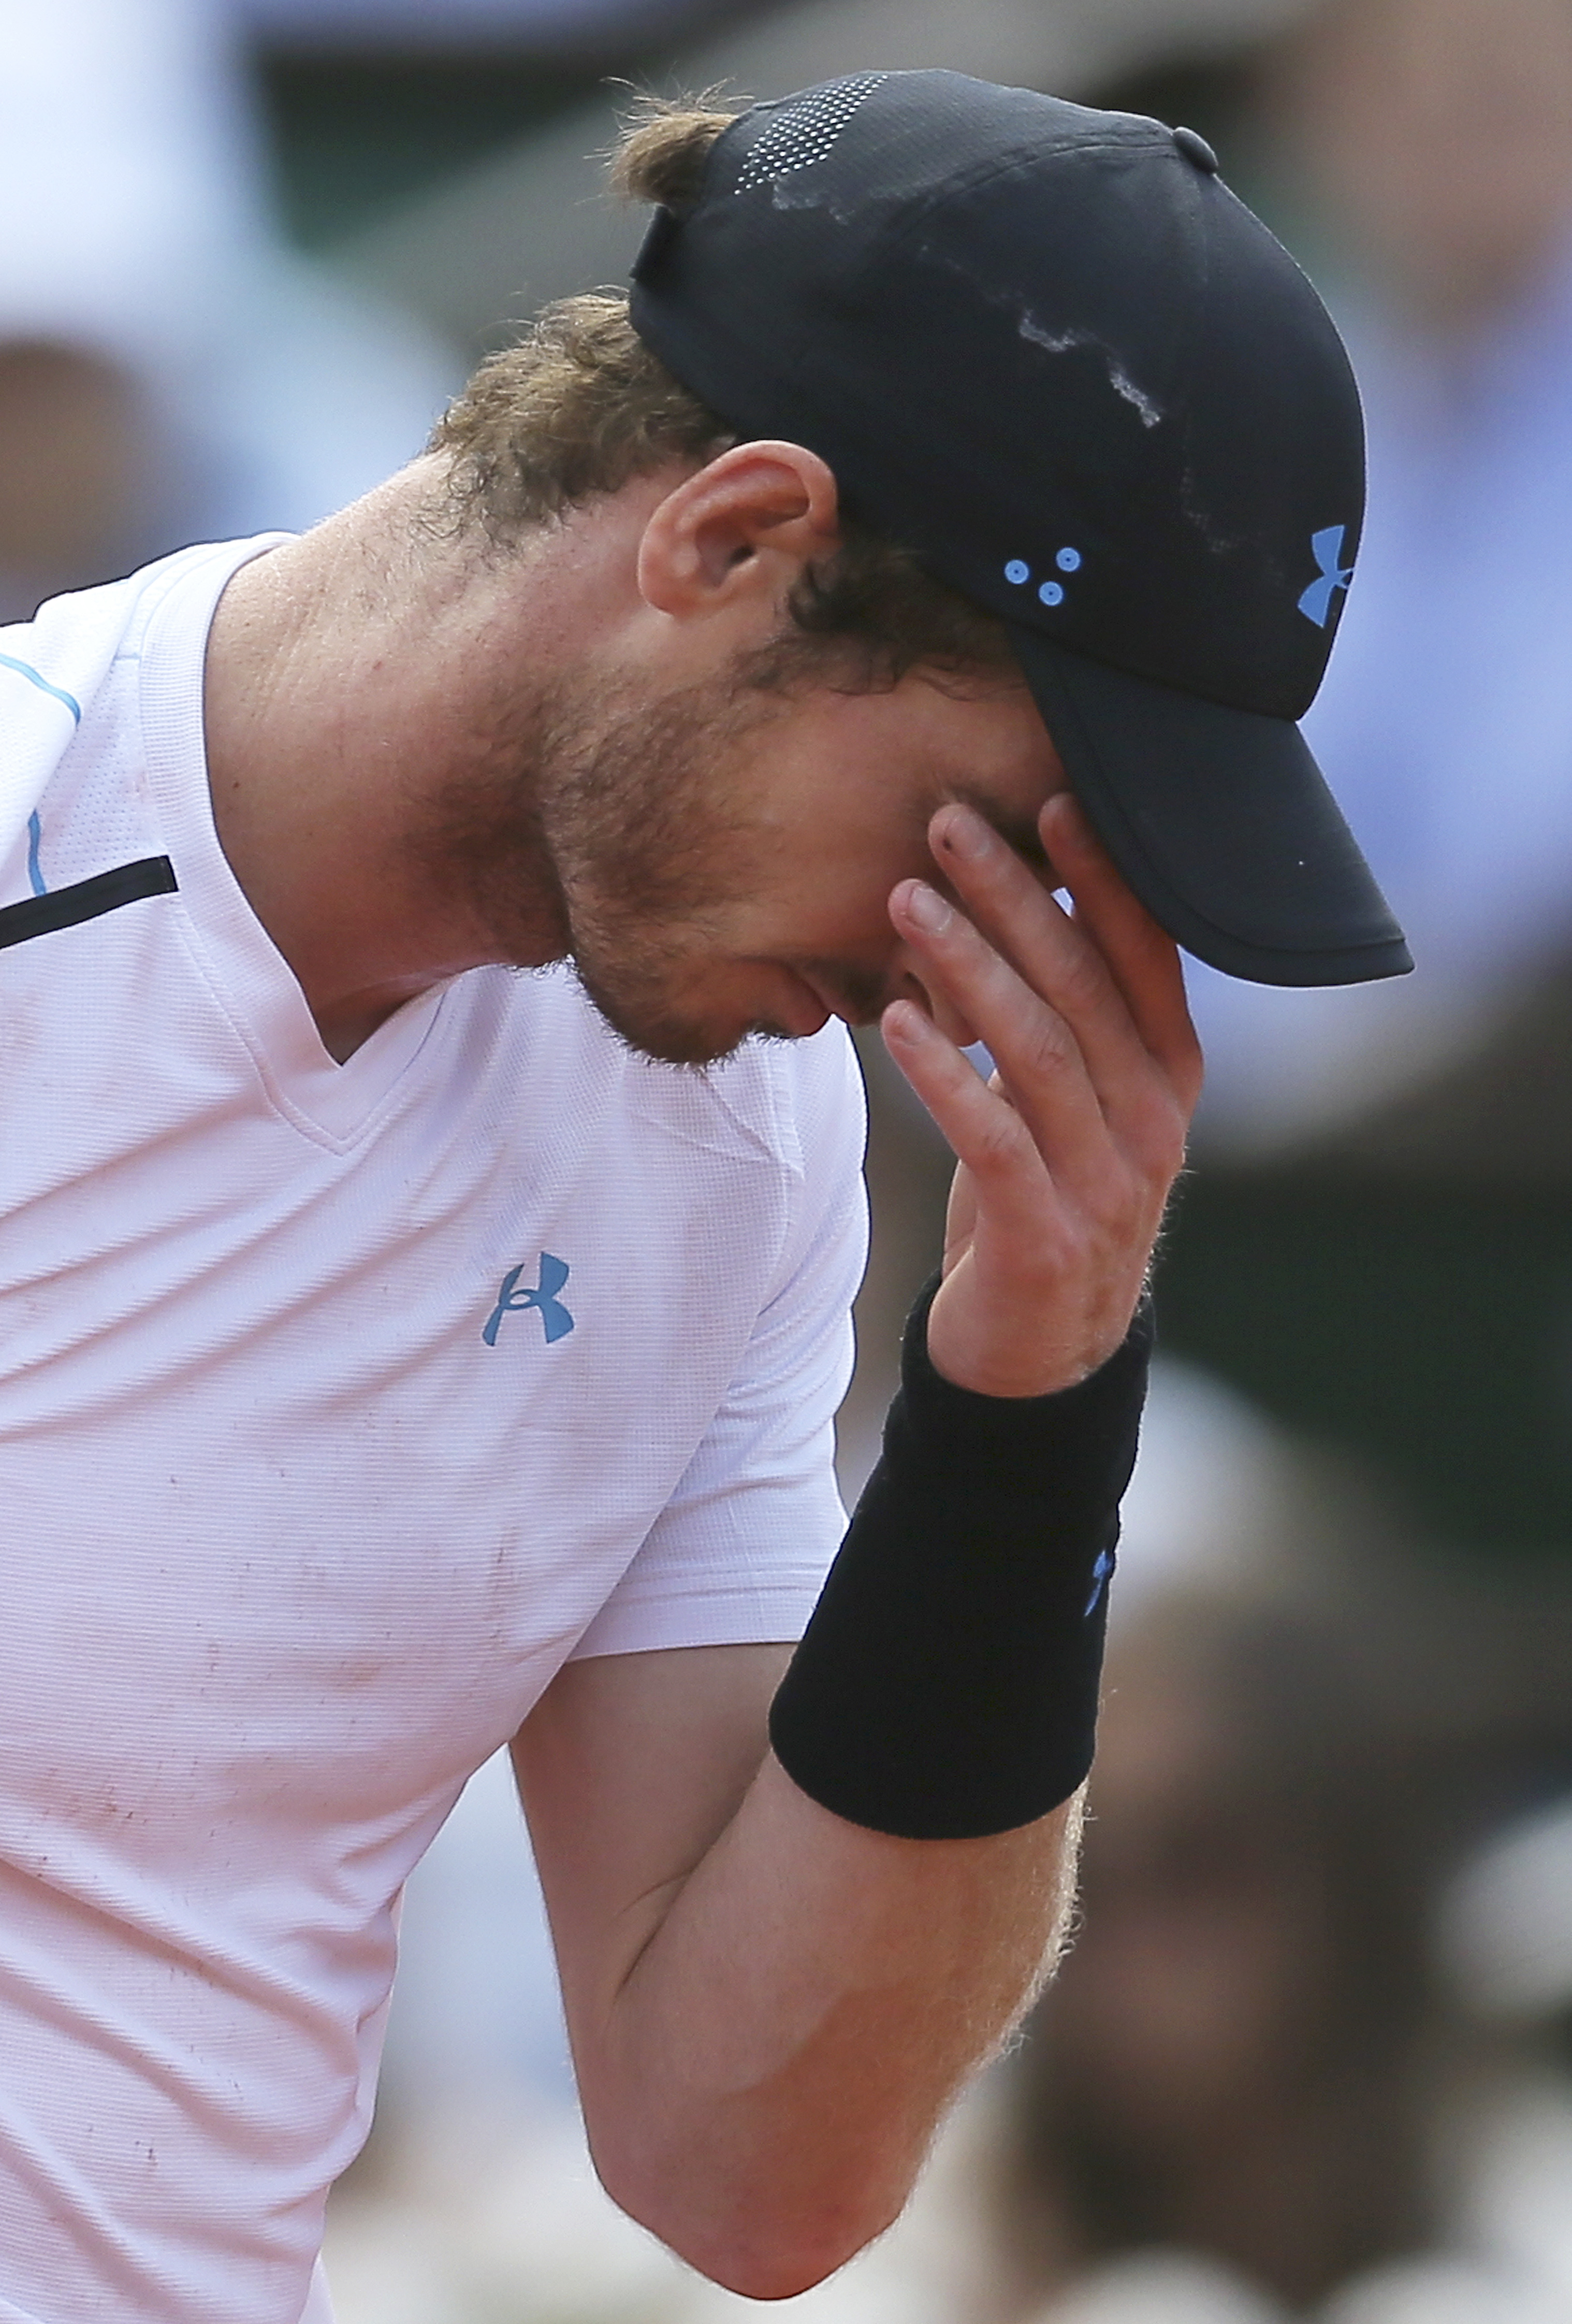 Britain's Andy Murray reacts as he plays Switzerland's Stan Wawrinka during their semifinal match of the French Open tennis tournament at the Roland Garros stadium, Friday, June 9, 2017 in Paris. (AP Photo/David Vincent)